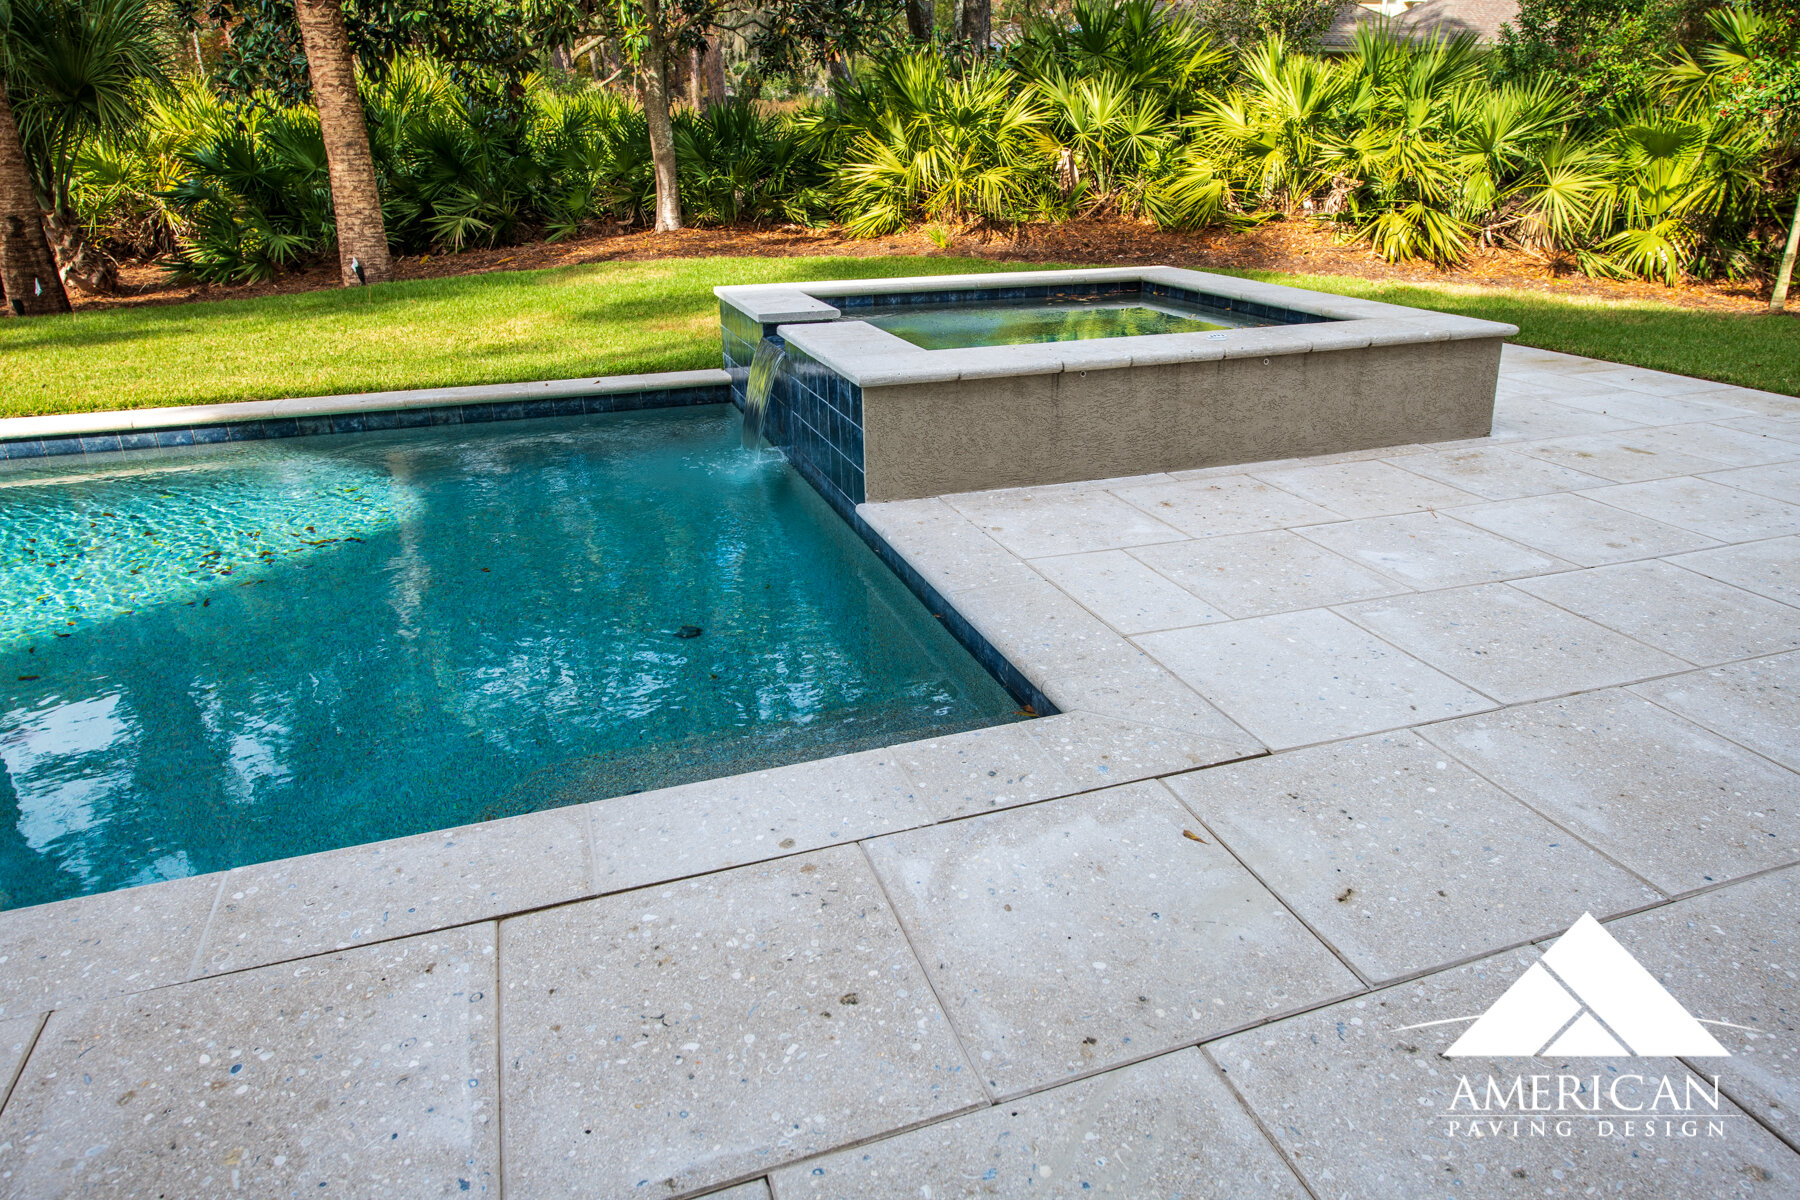 tabby shellstone paver patio and pool deck designs american paving design